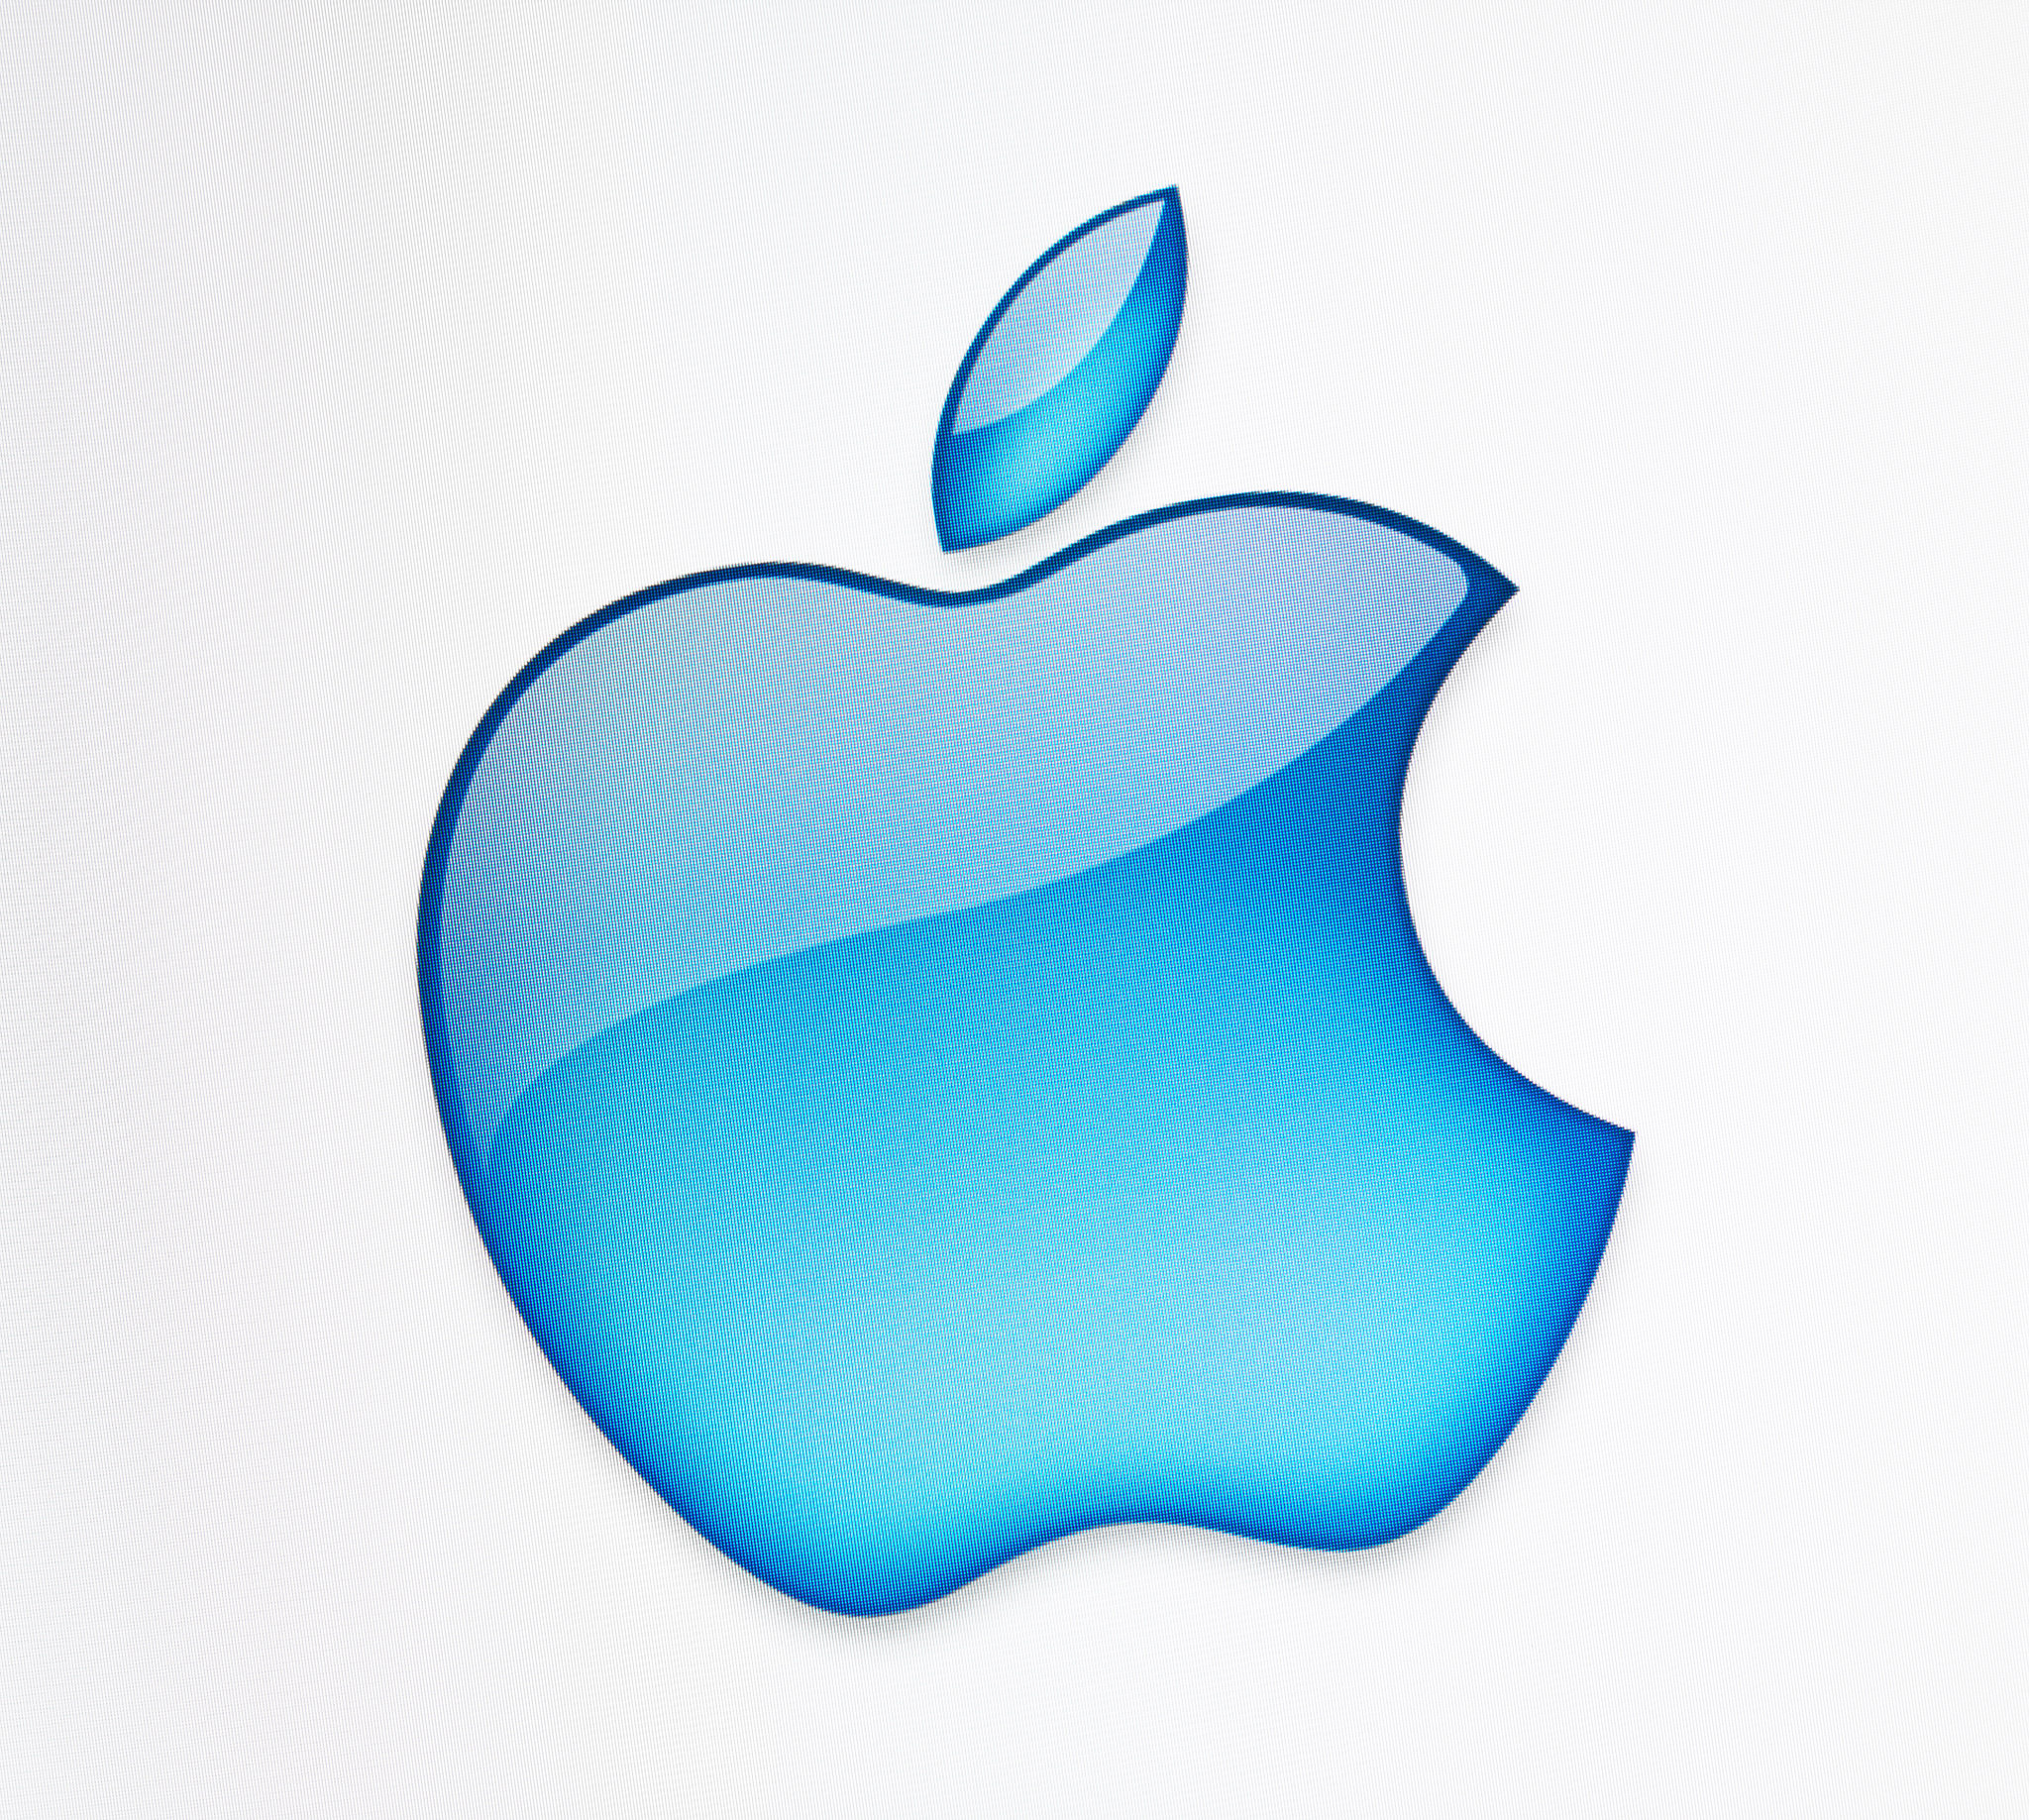 the battle for privacy by apple inc against the fbi The fbi waged a high-profile public fight to force apple inc to unlock the   going to court in a case that pitted national security against digital privacy  the  report said, because that undercut the legal battle against apple.